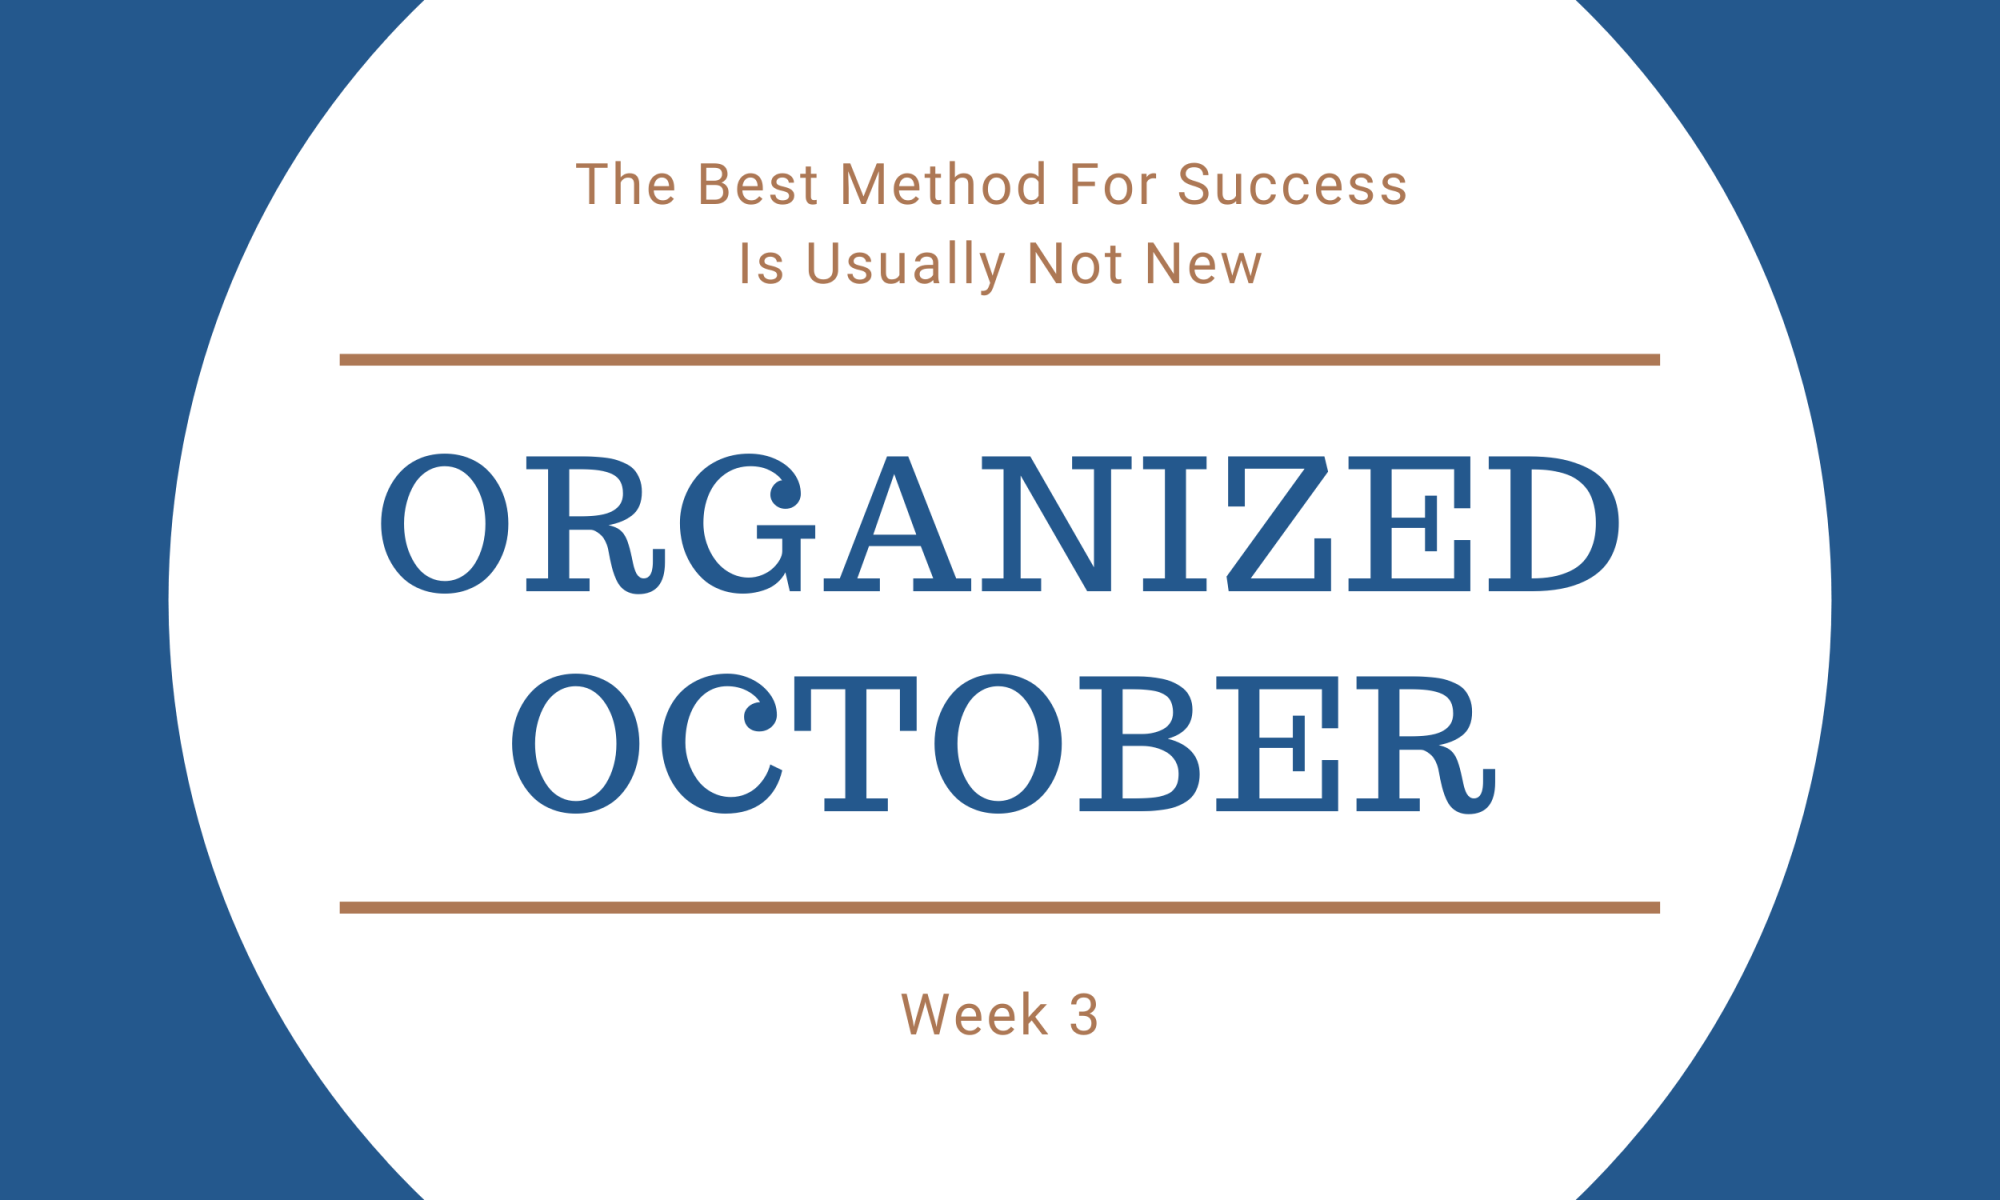 Organized October Week 3